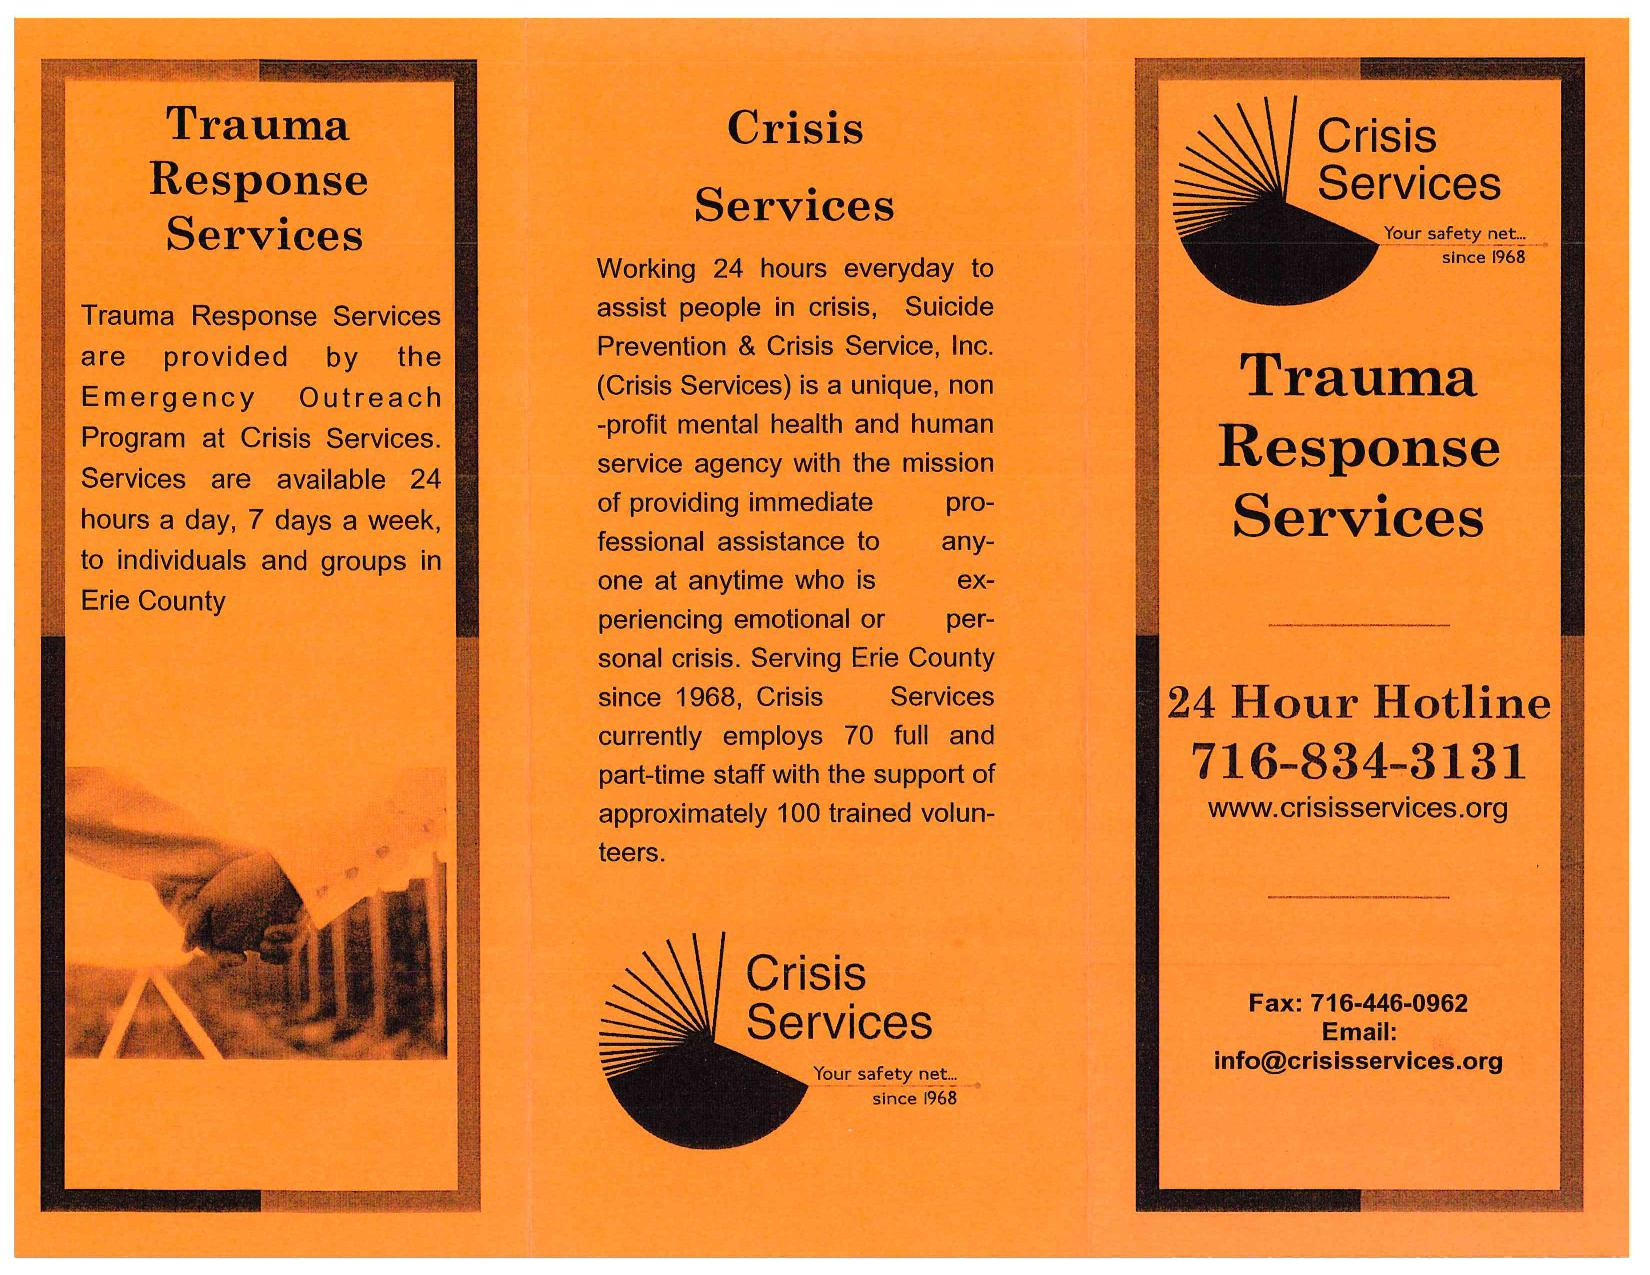 Crisis Services Traumatic Stress page 002